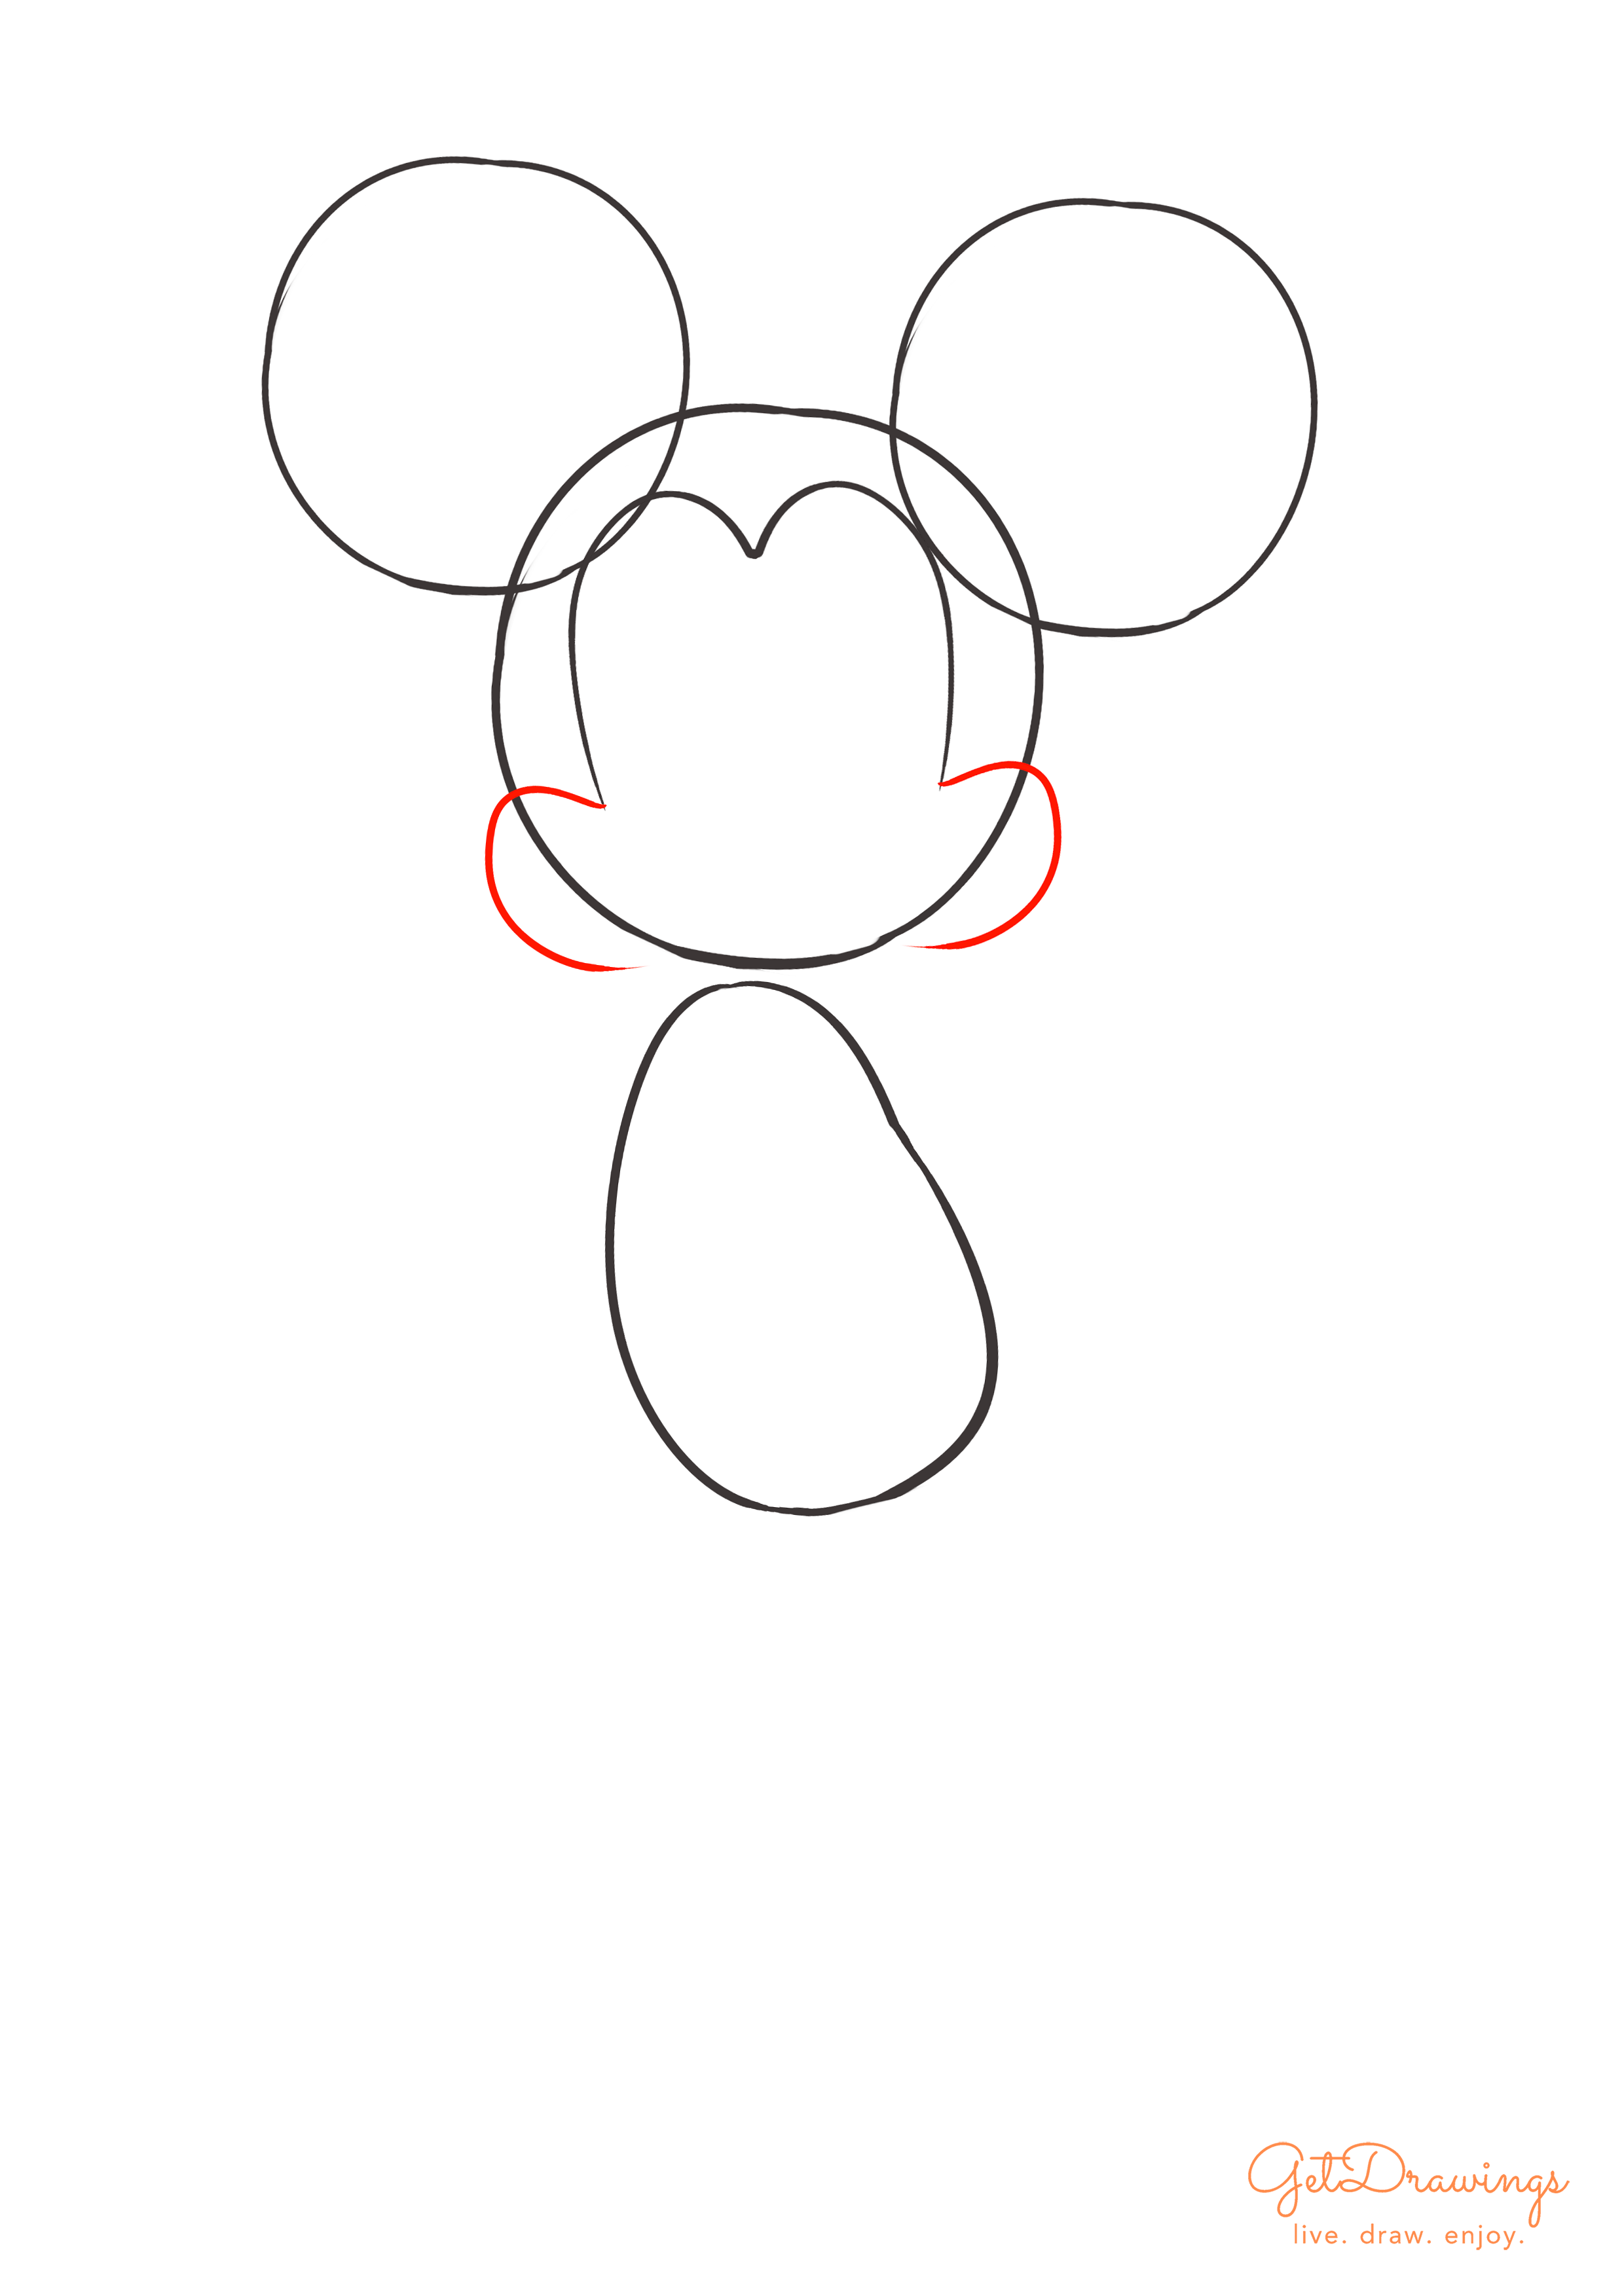 How to draw a Mickey Mouse?